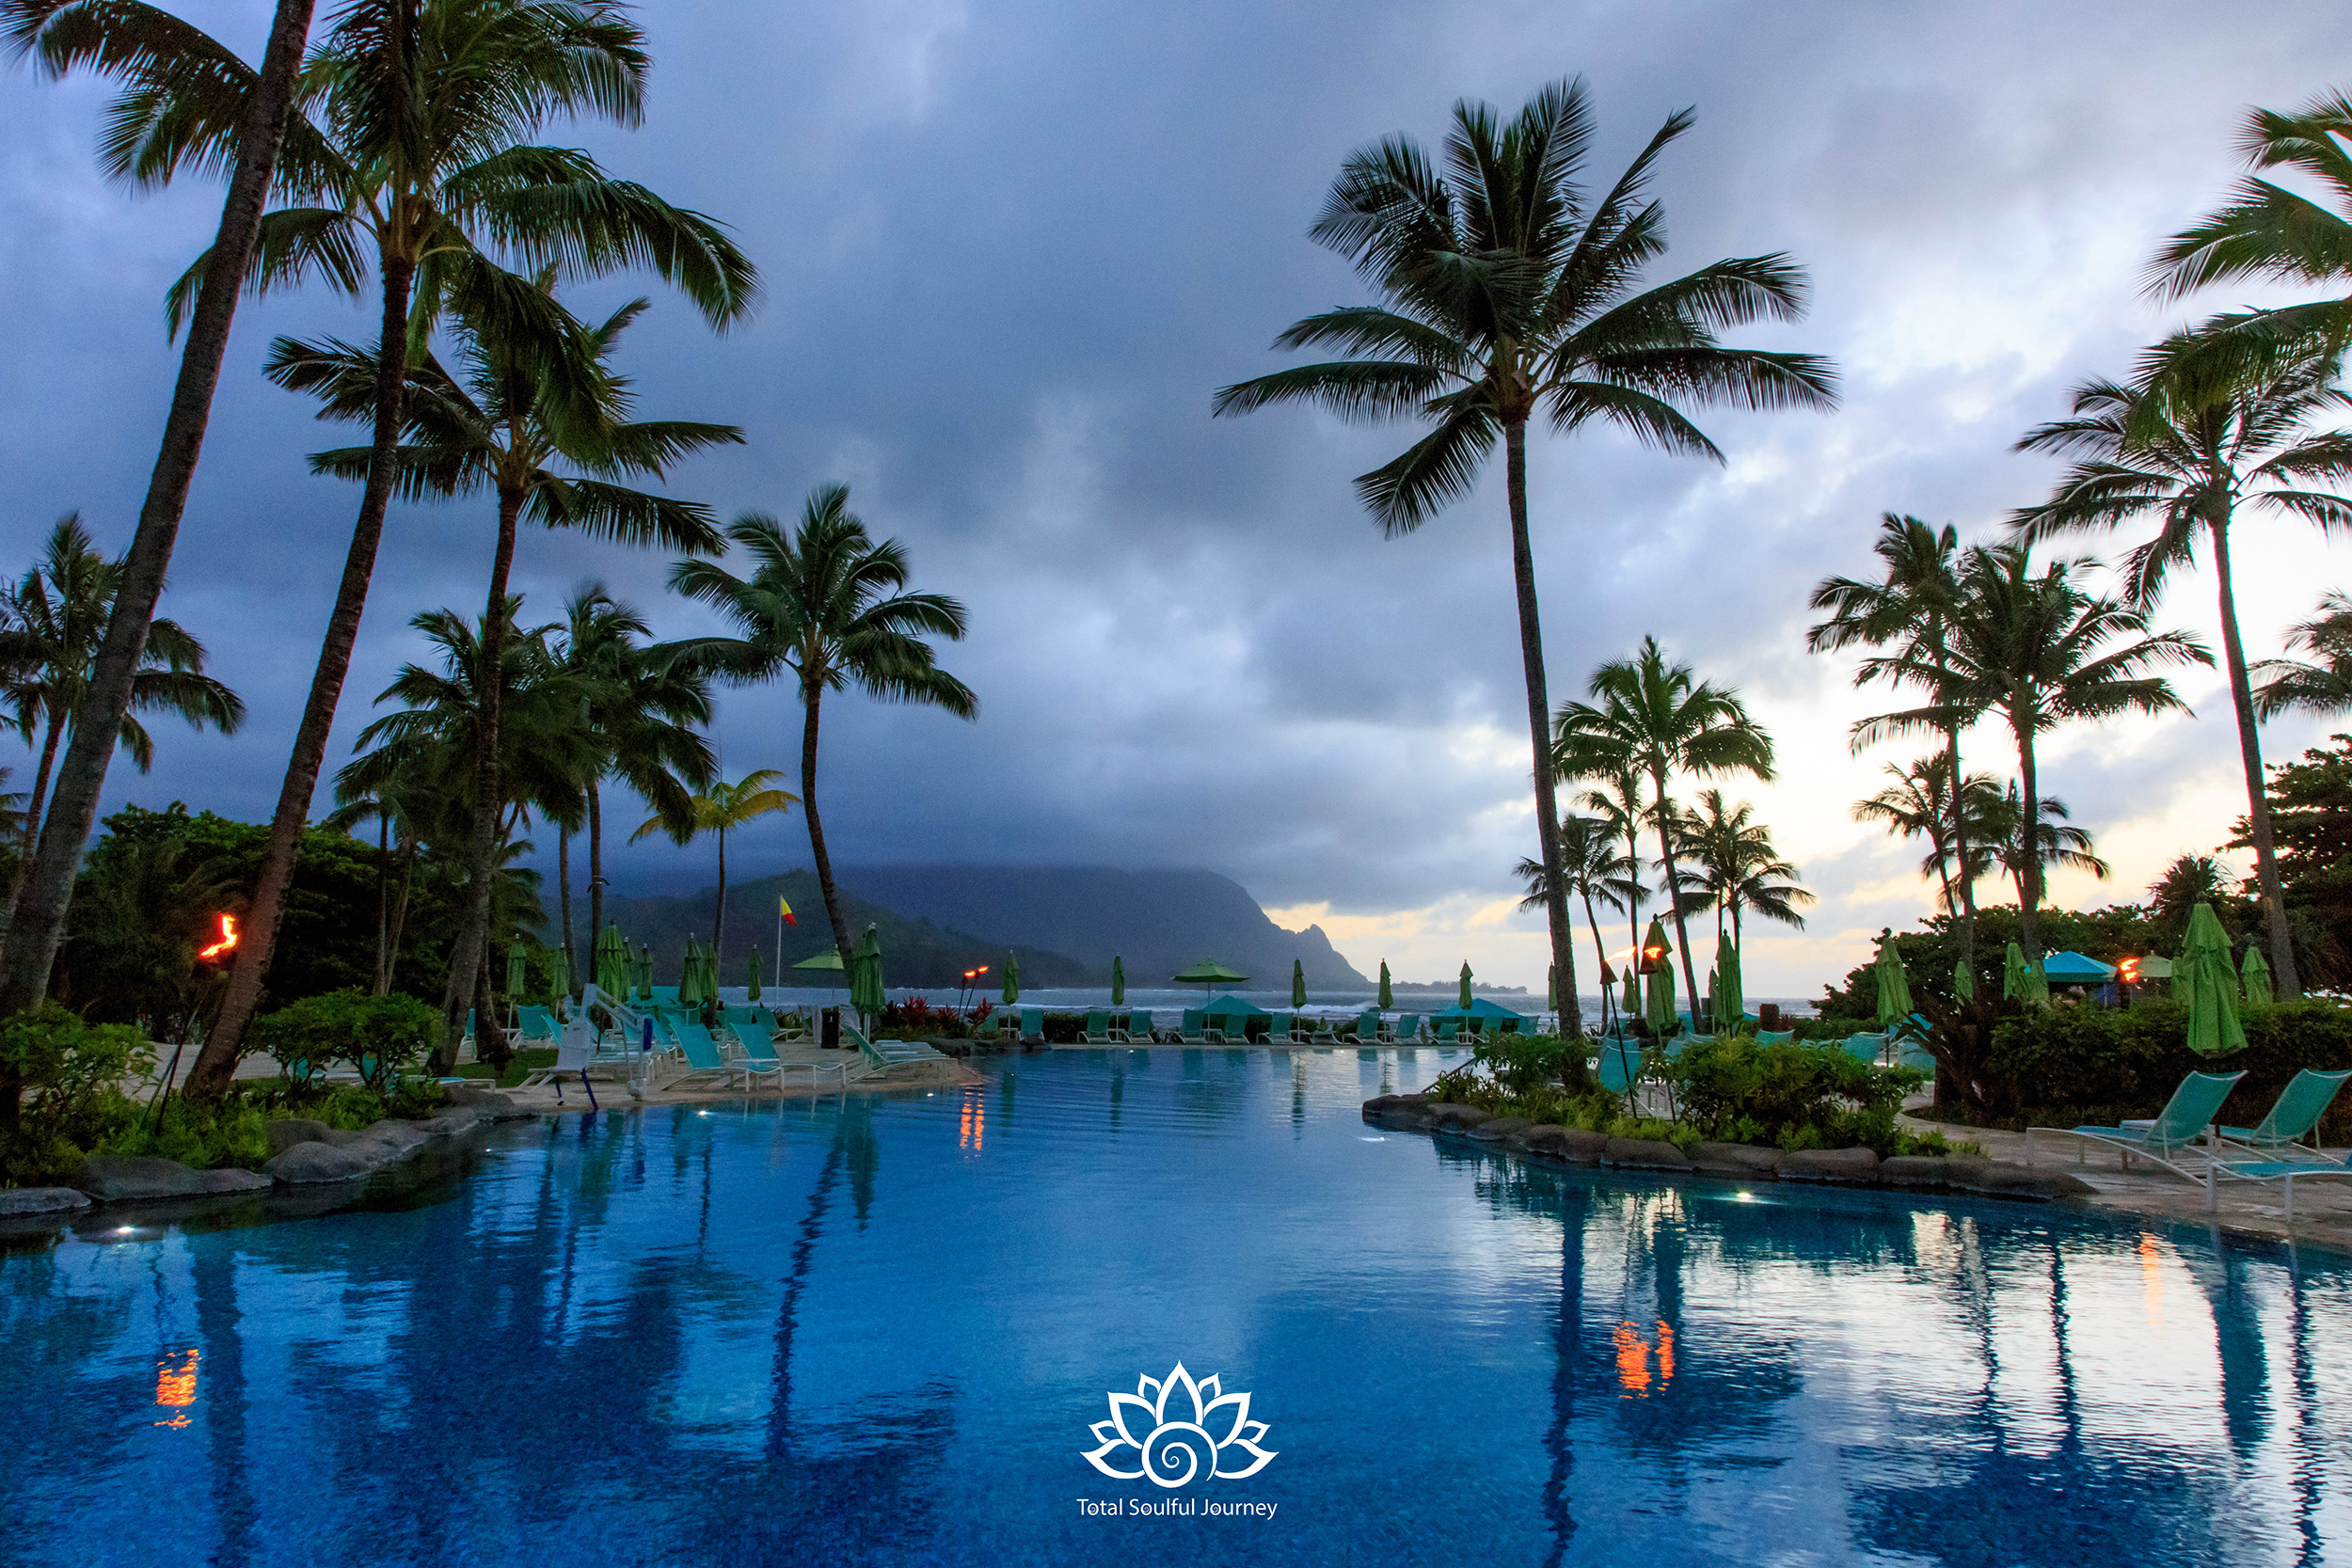 Sunset at the St. Regis Princeville Resort is incredible. Photography by Paul Garrett